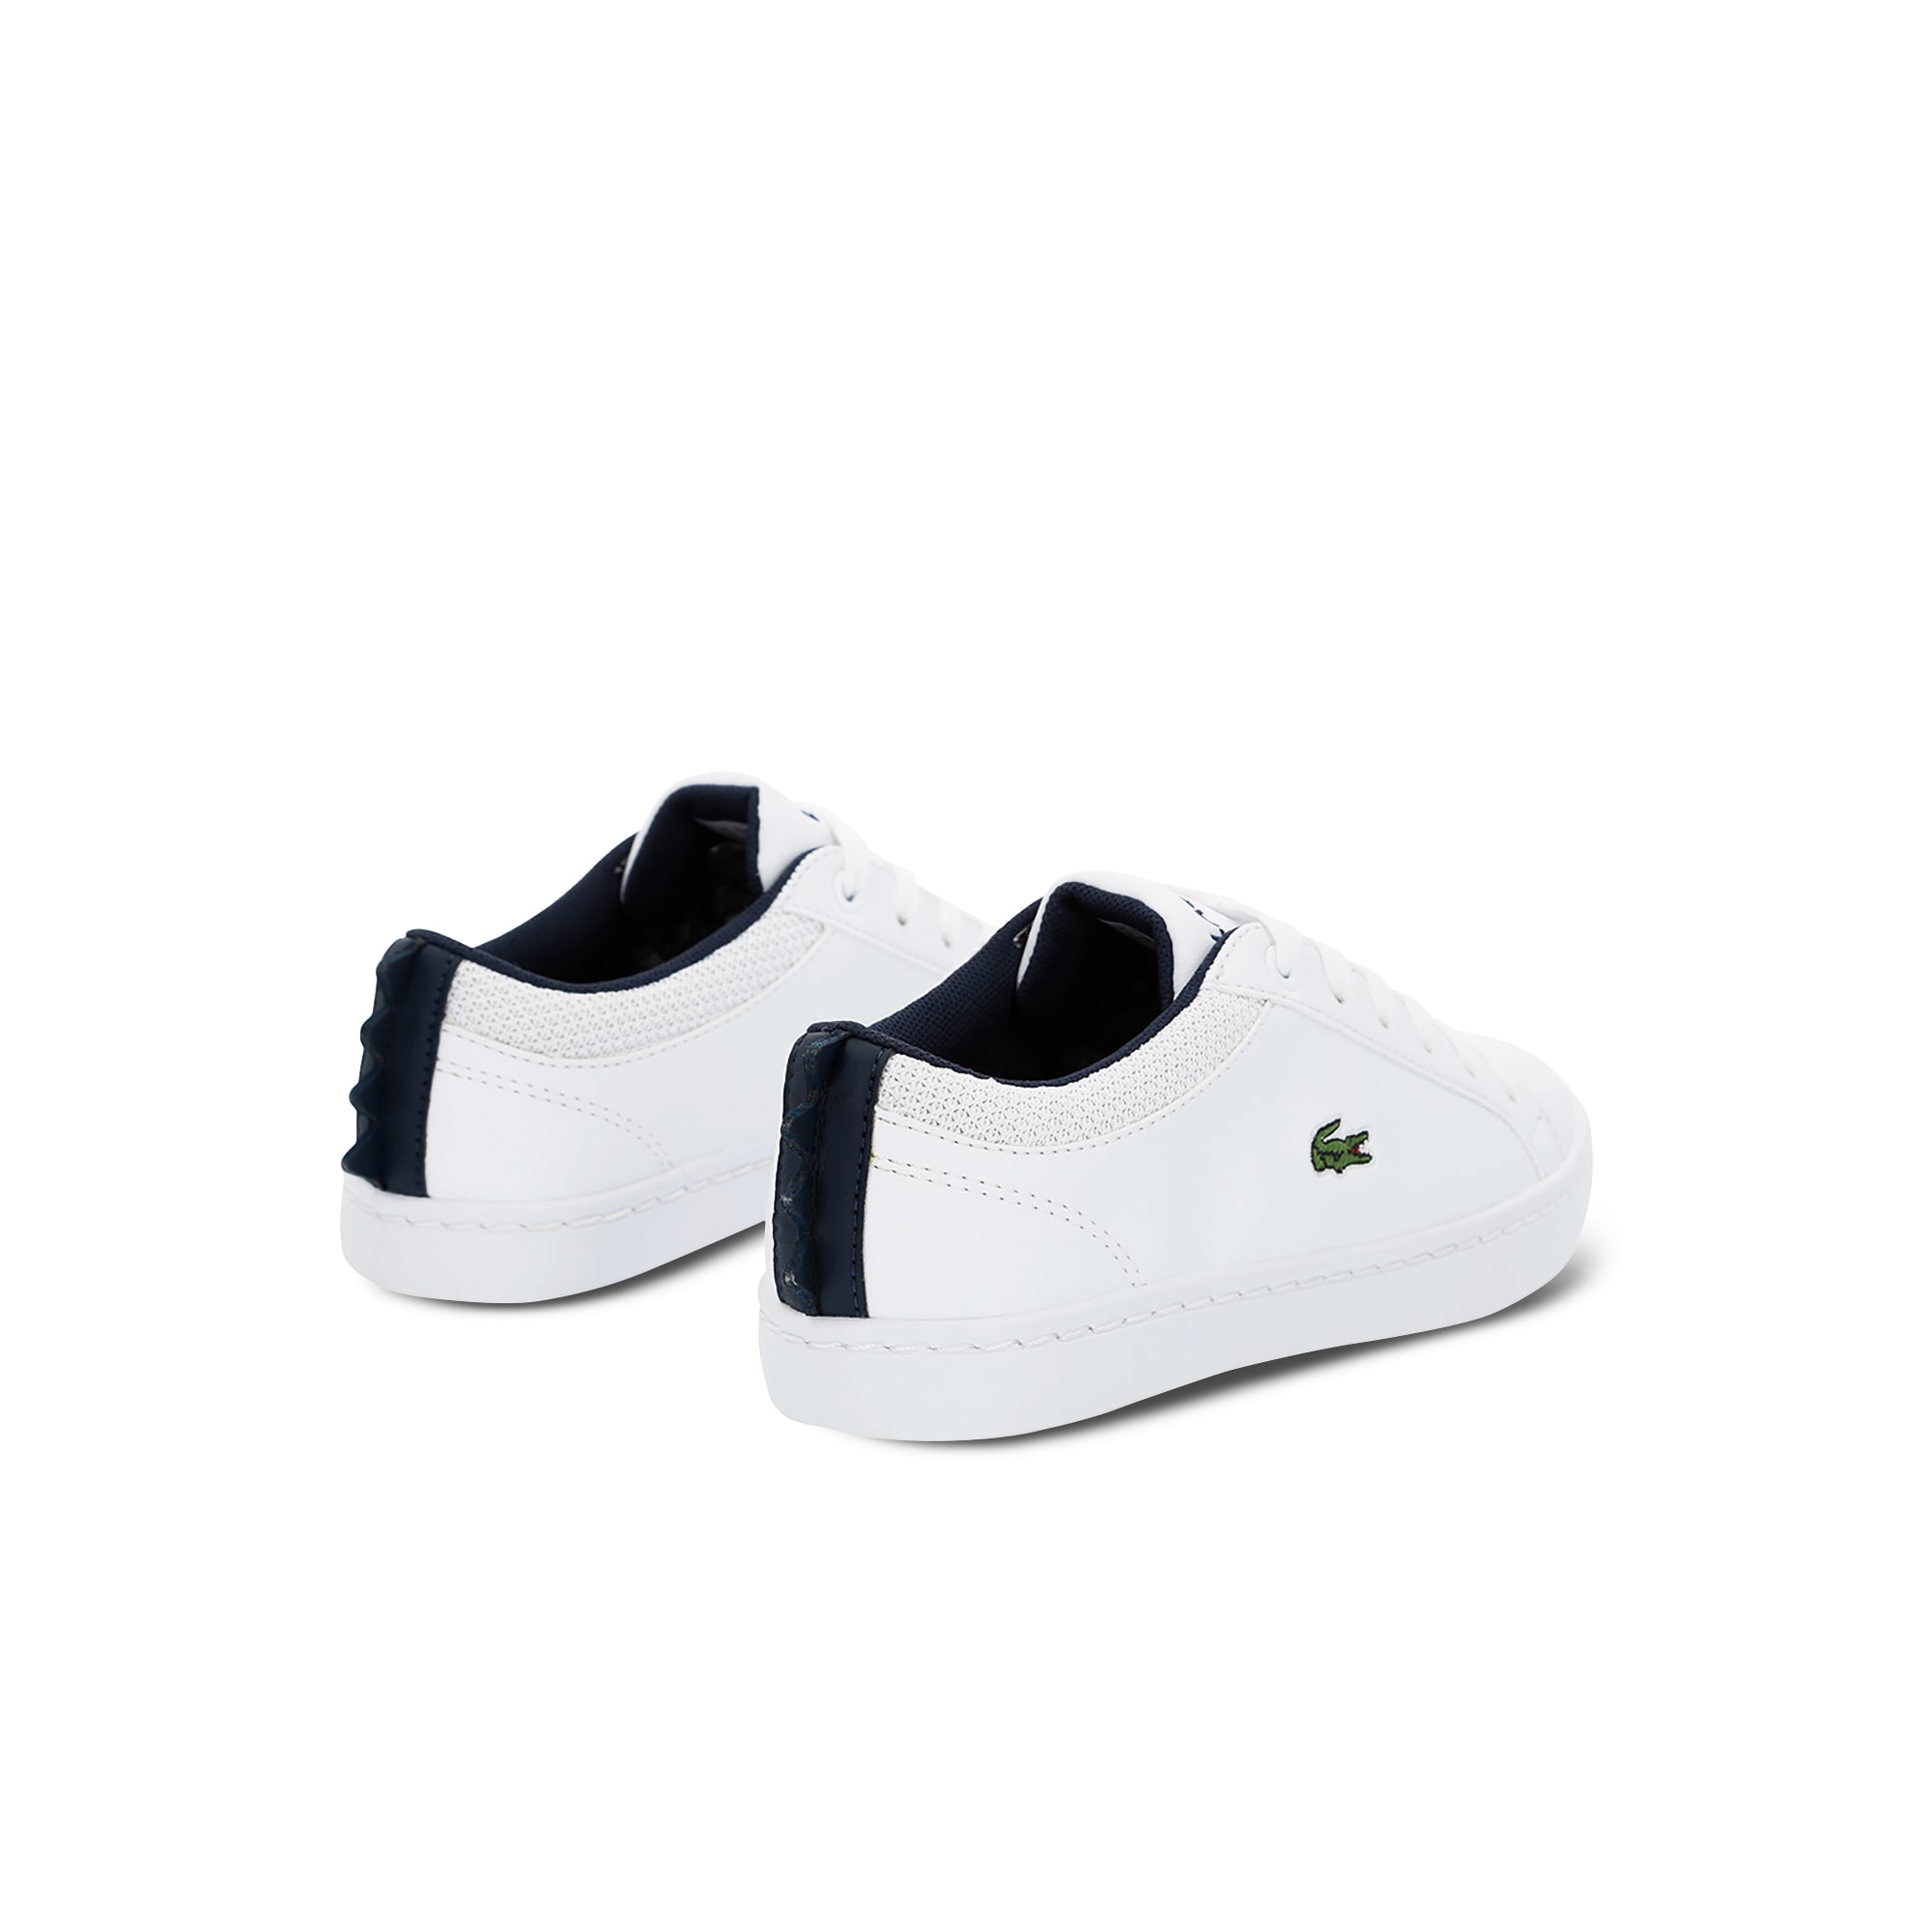 Children's Straighset Sneakers with Crocodile Spine